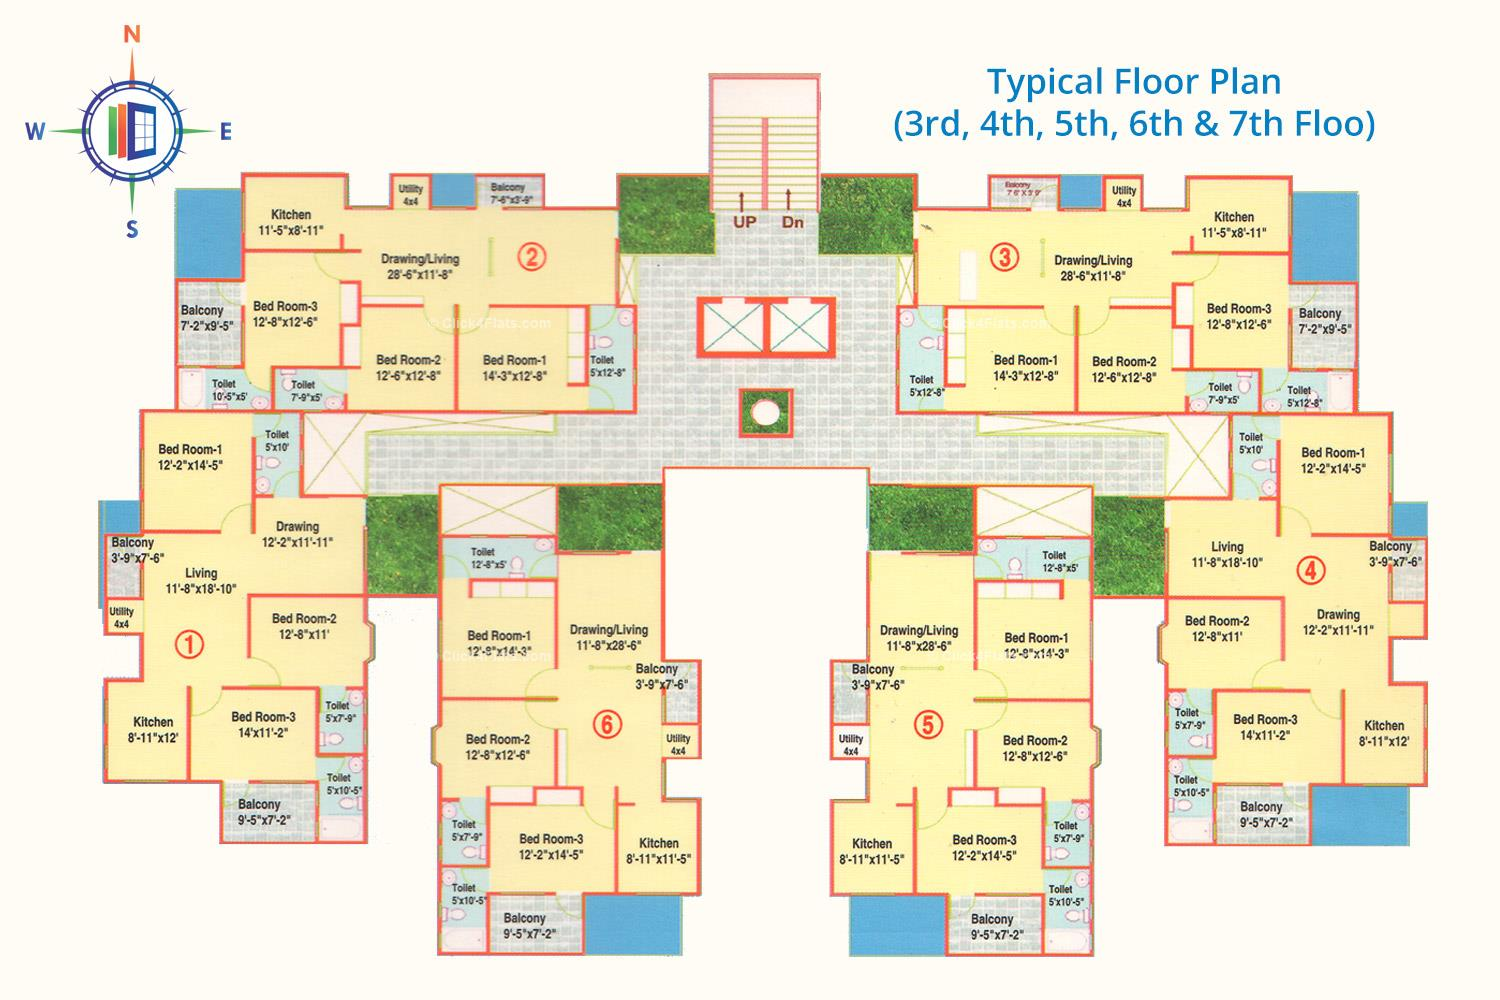 The Crown Plaza Typical Floor Plan